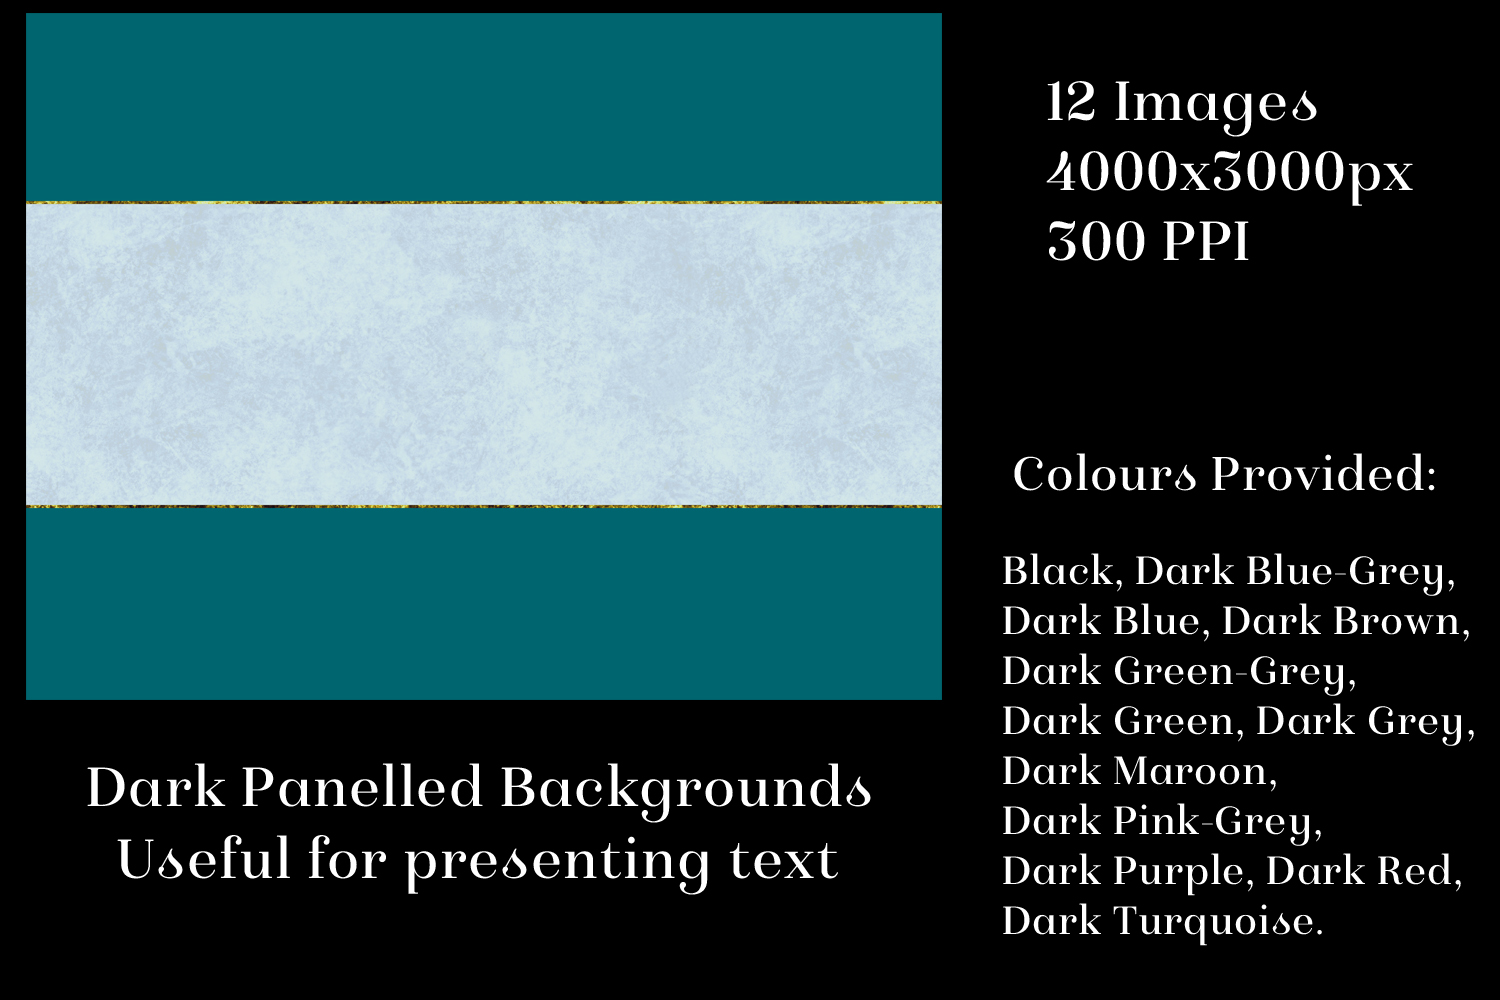 Dark Panelled Backgrounds - 12 Image Textures Set example image 2